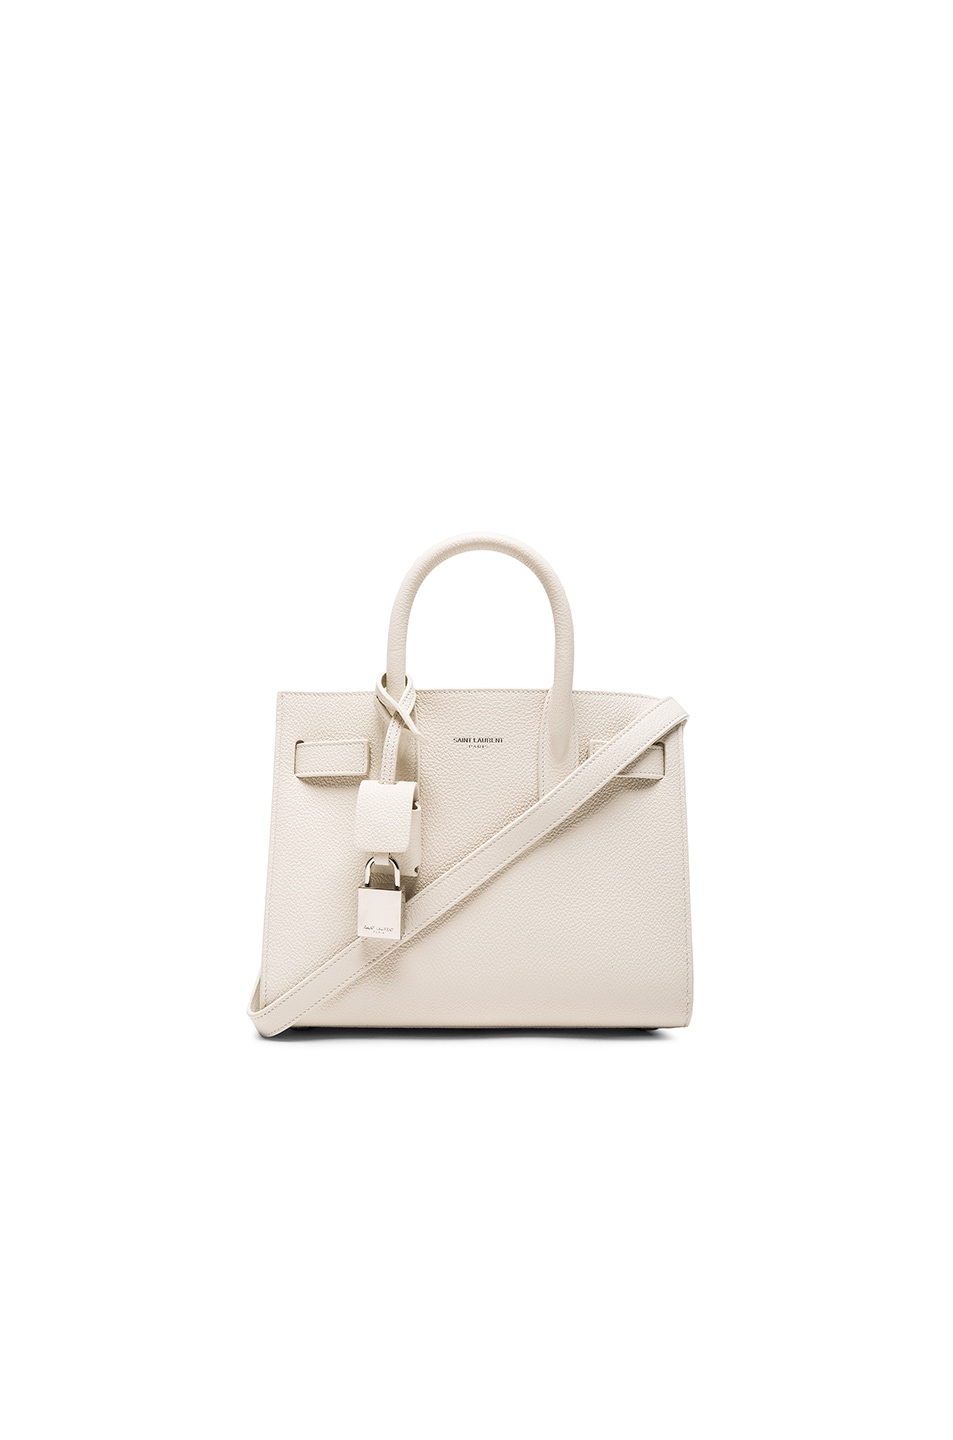 Image 1 of Saint Laurent Nano Sac de Jour in Porcelain